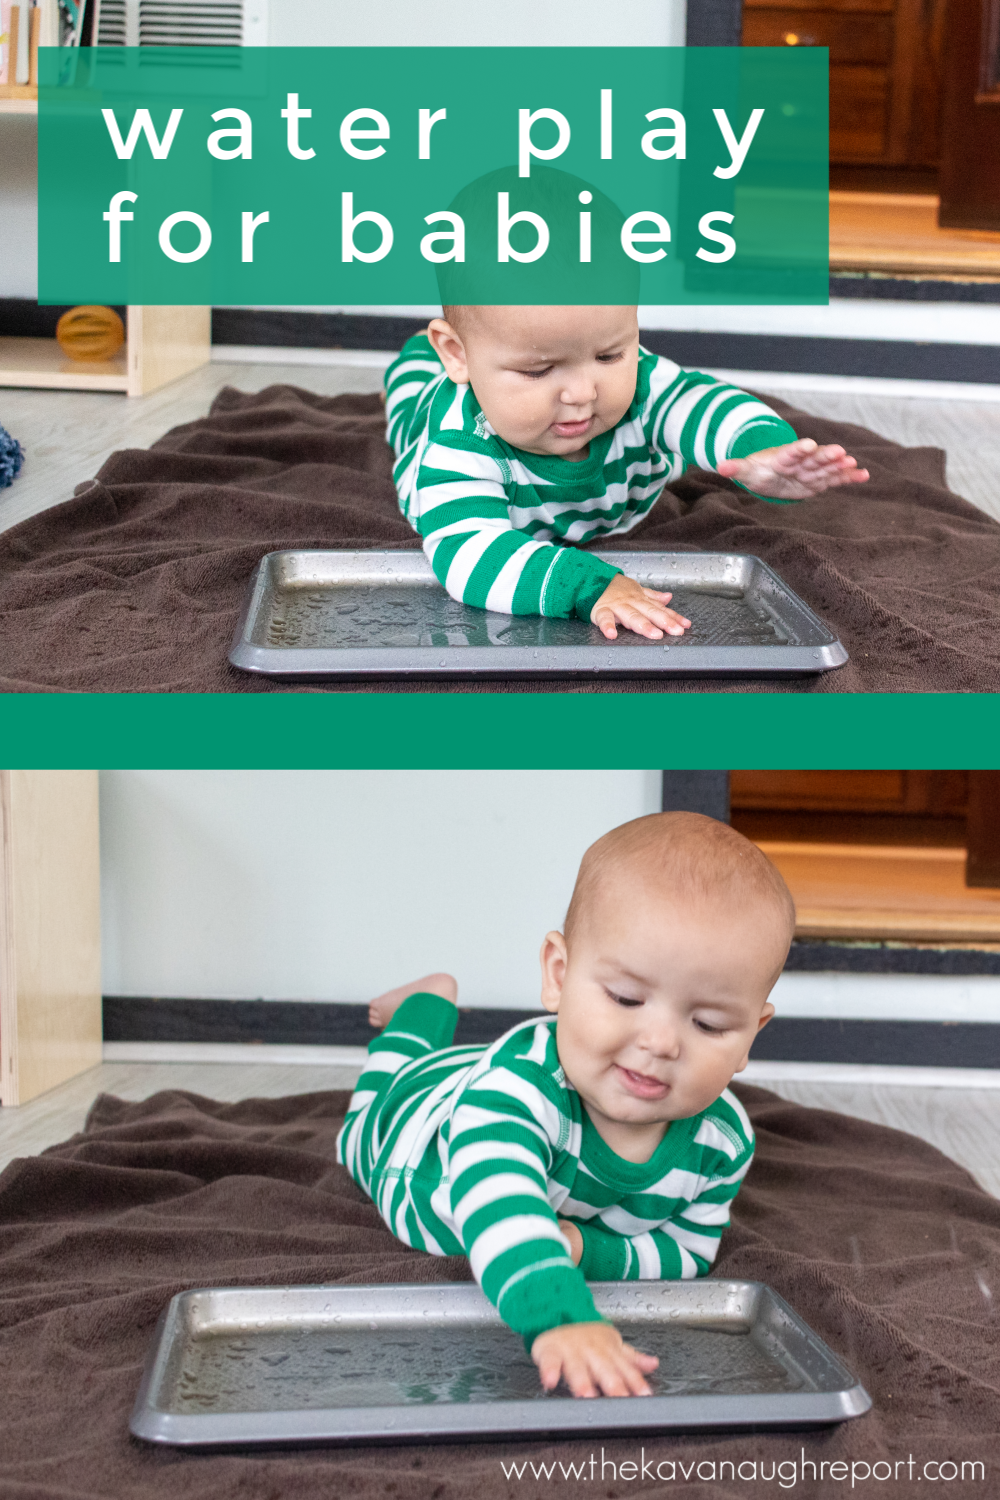 Babies learn through their senses. This easy Montessori friendly baby activity was a fun sensory experience allowing babies to learn about water.